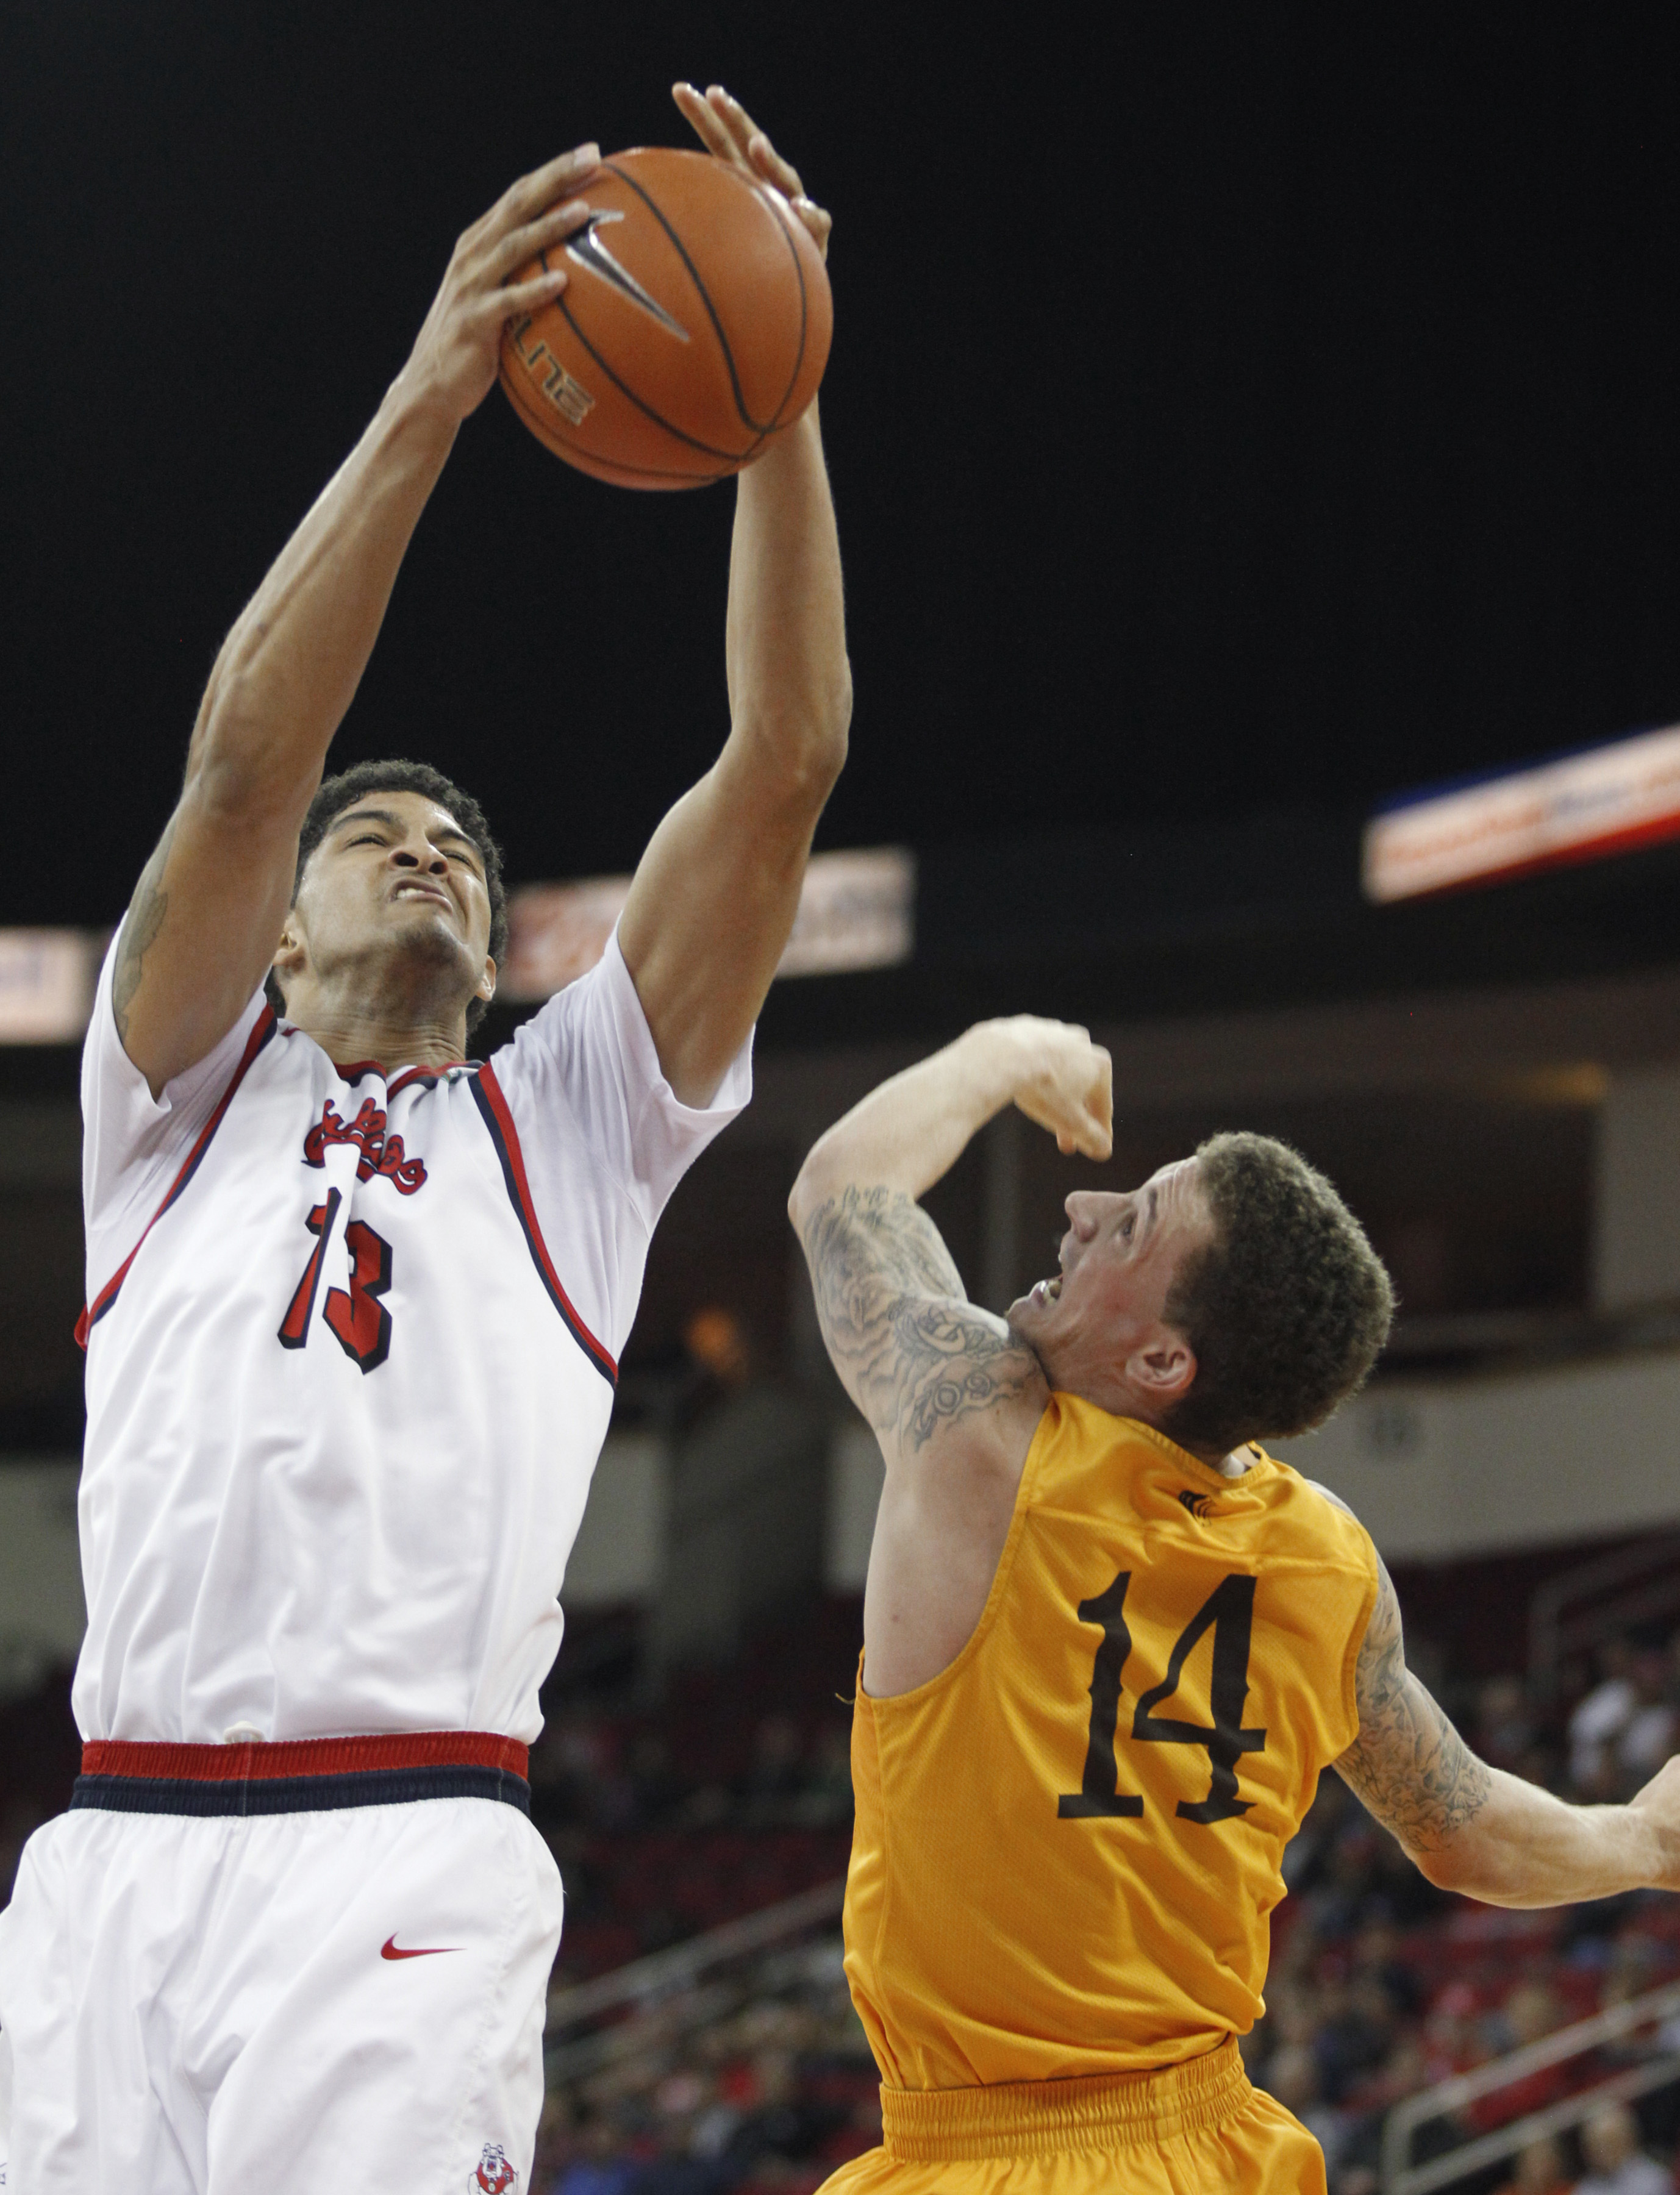 Fresno State's Cullen Russo goes up for a rebound over Wyoming's Josh Adams during the second half of an NCAA college basketball game in Fresno, Calif., Tuesday, Jan. 26, 2016. Fresno State won 71-60. (AP Photo/Gary Kazanjian)